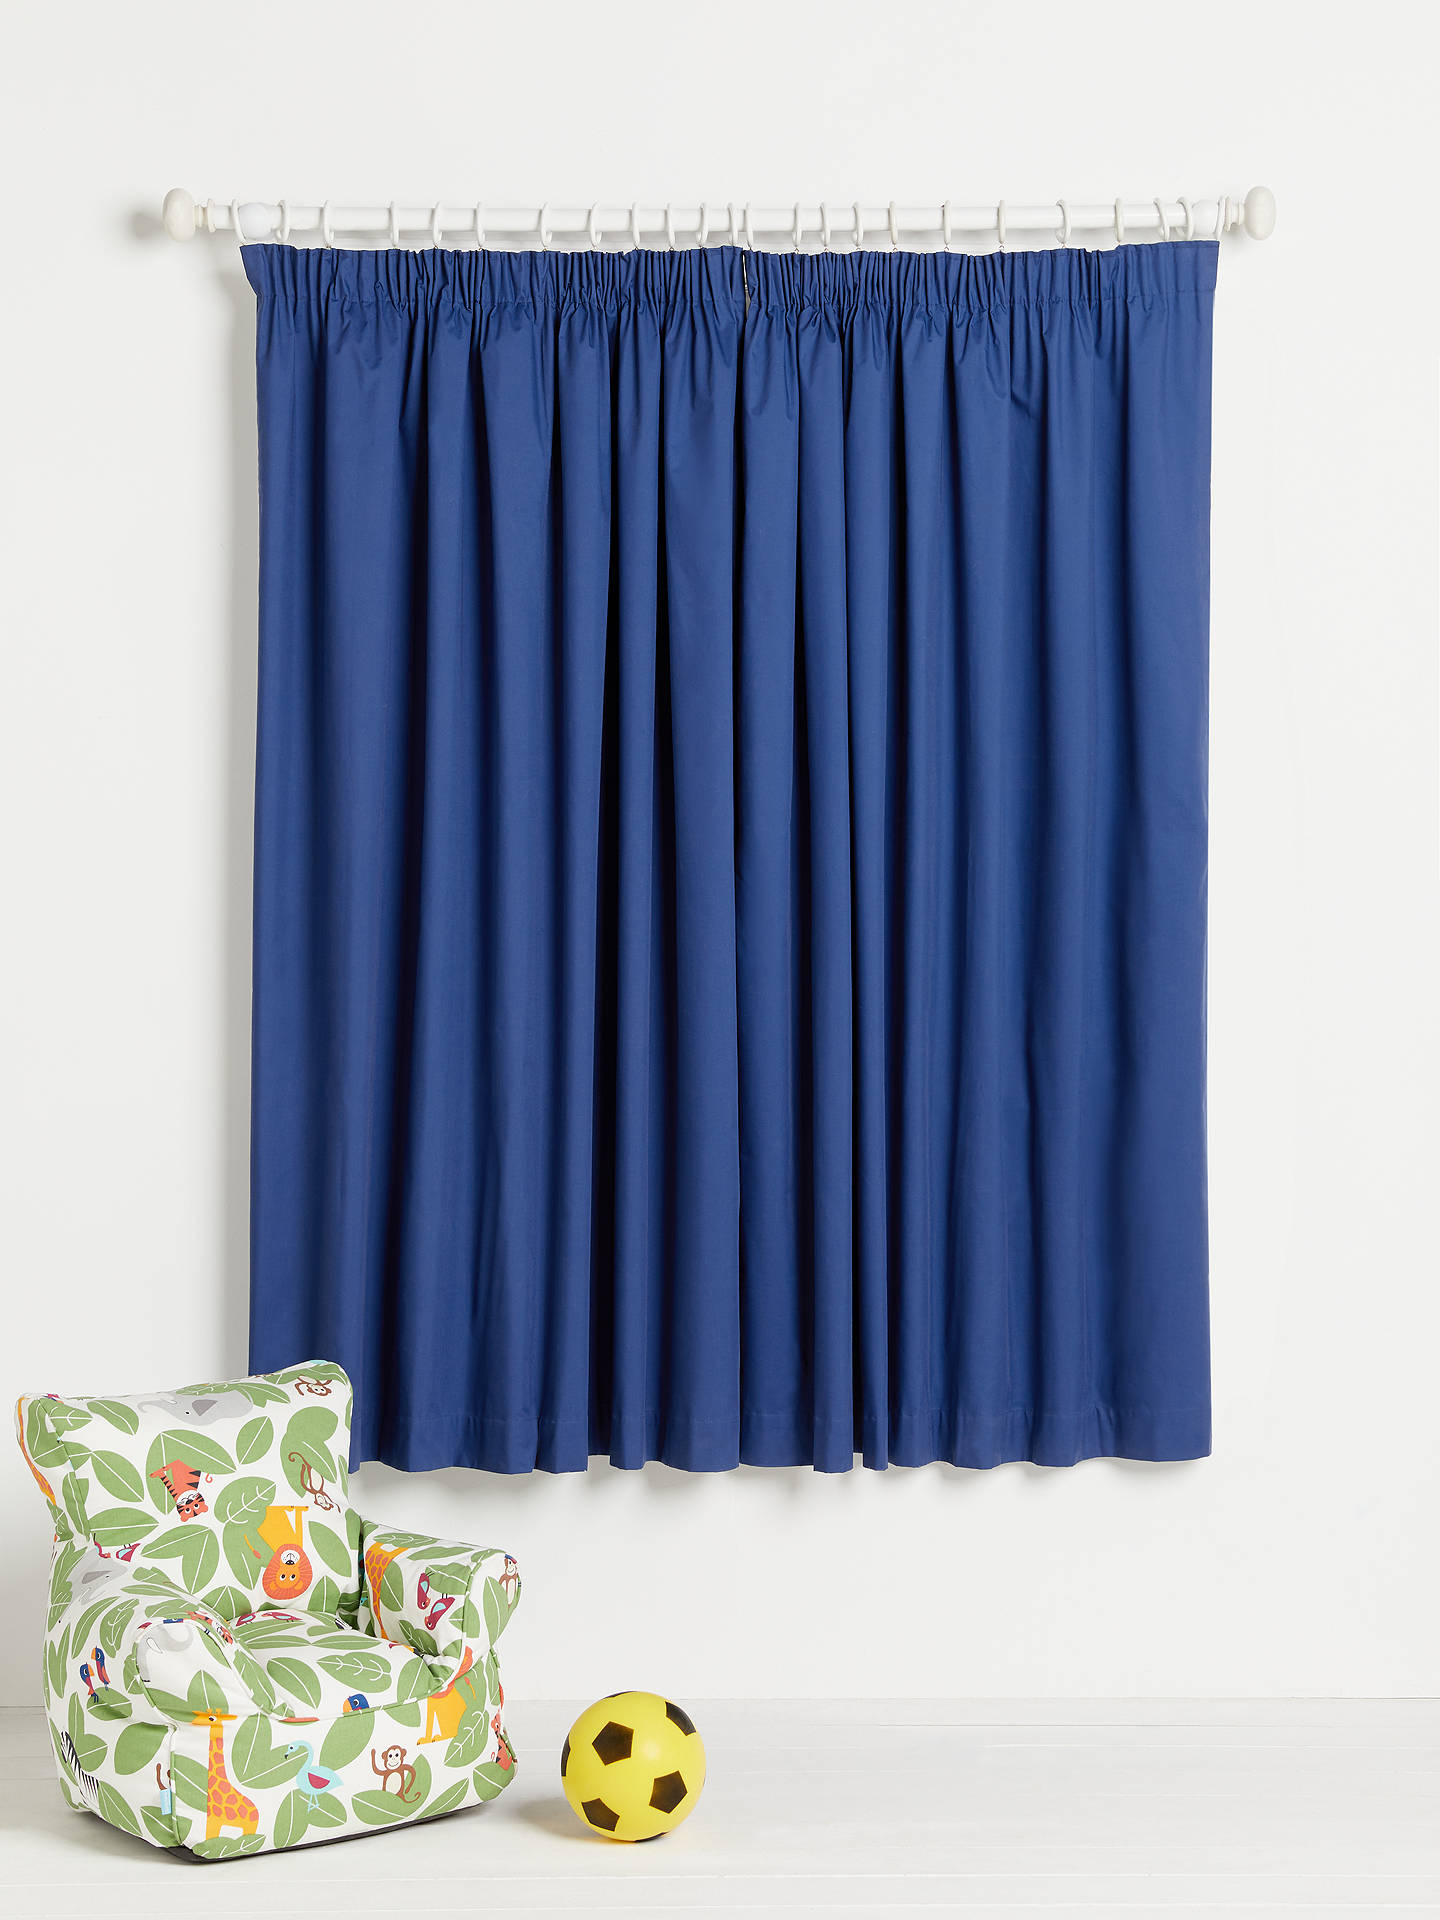 Buy little home at John Lewis Plain Pencil Pleat Blackout Lined Children's Curtains, Navy, W117 x Drop 137cm Online at johnlewis.com